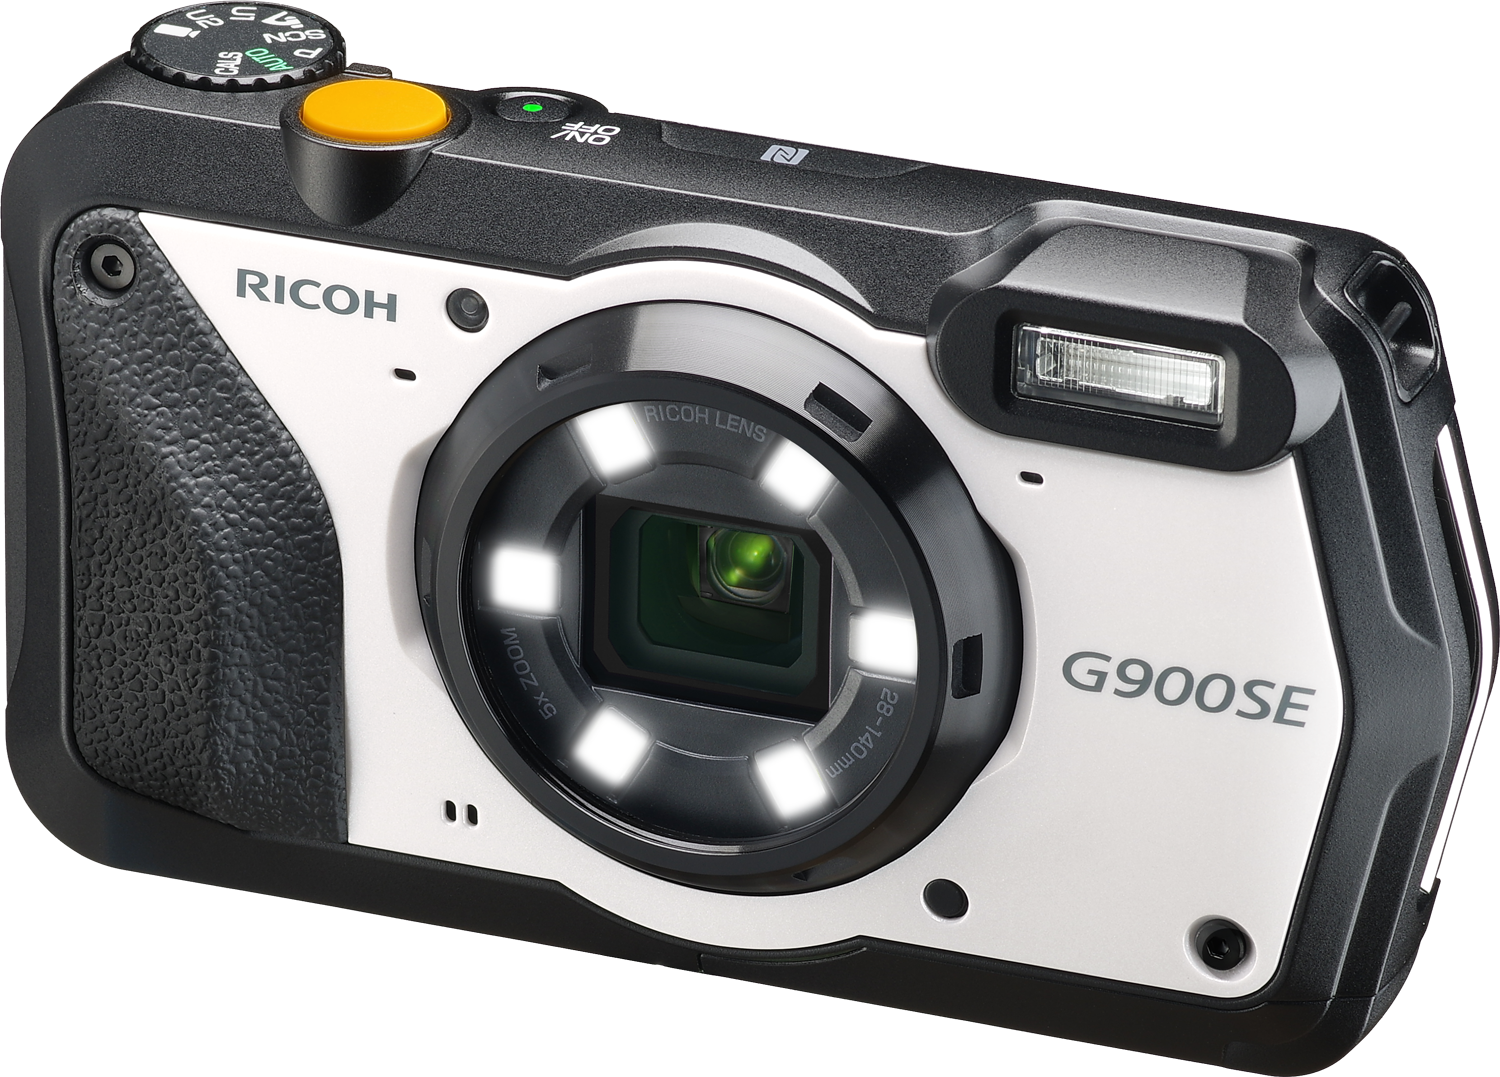 Ricoh G900: Digital Photography Review